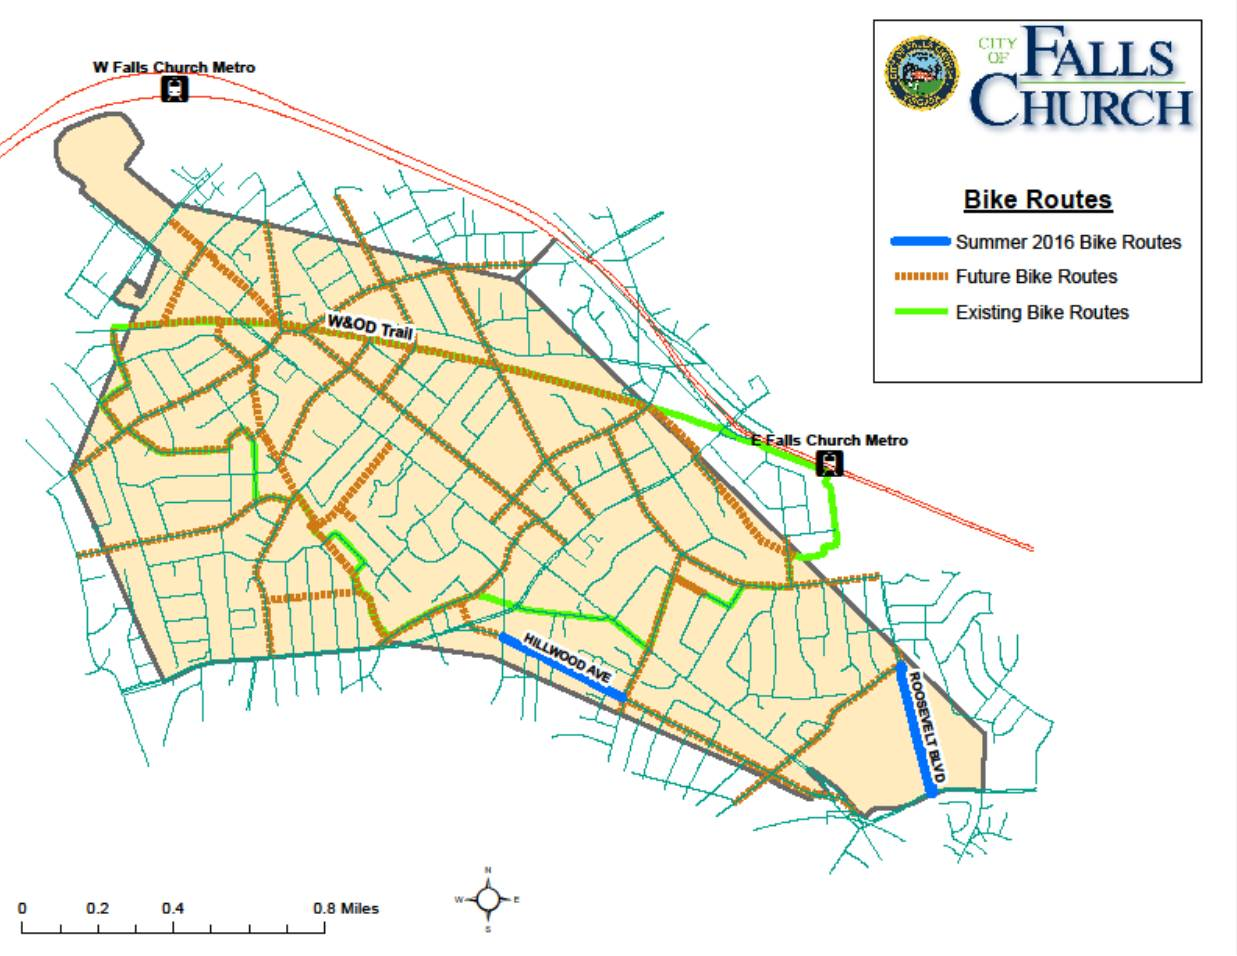 Summer 2016 Bike Routes Map